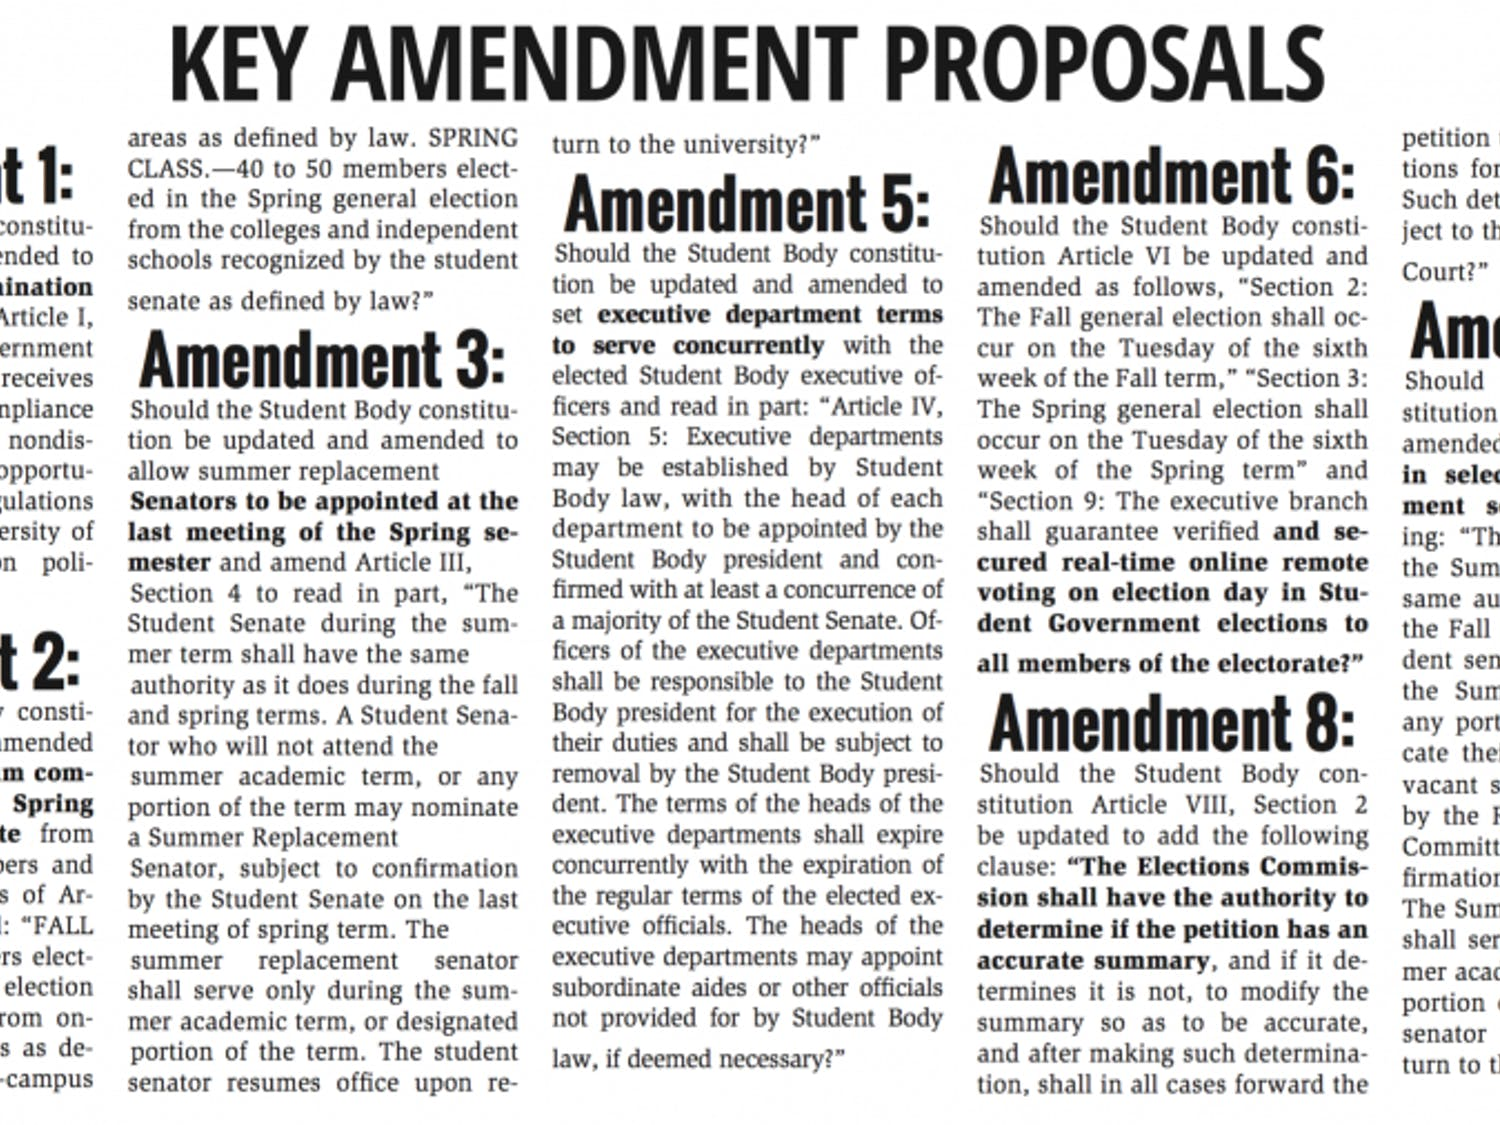 See the full list of 11 amendments here.